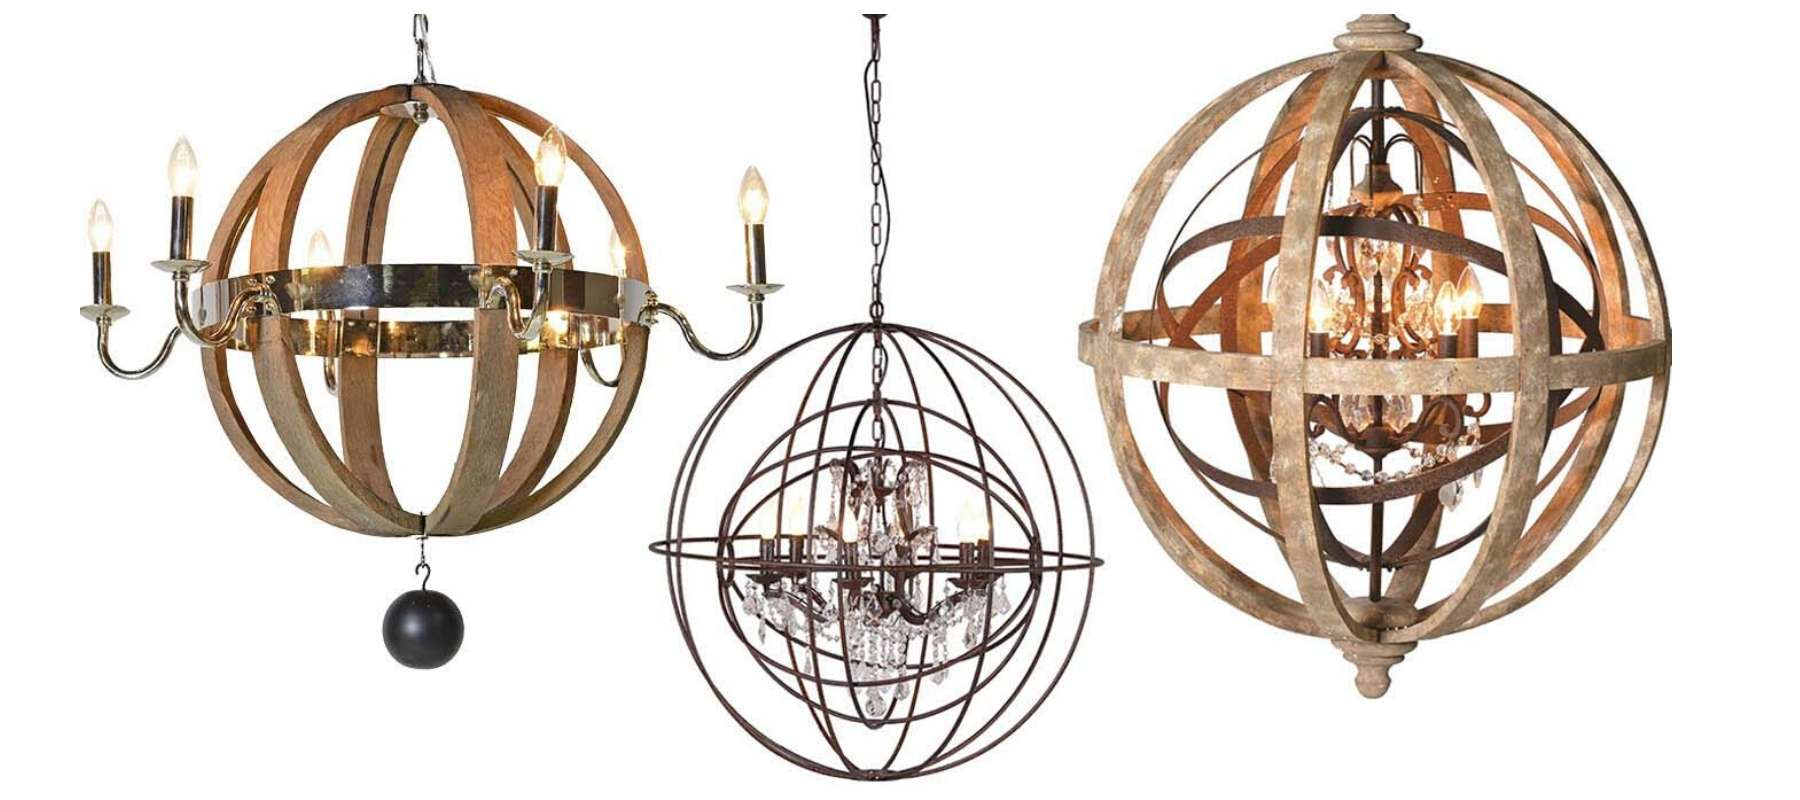 Collection of Kennedy Industrial pendant lights